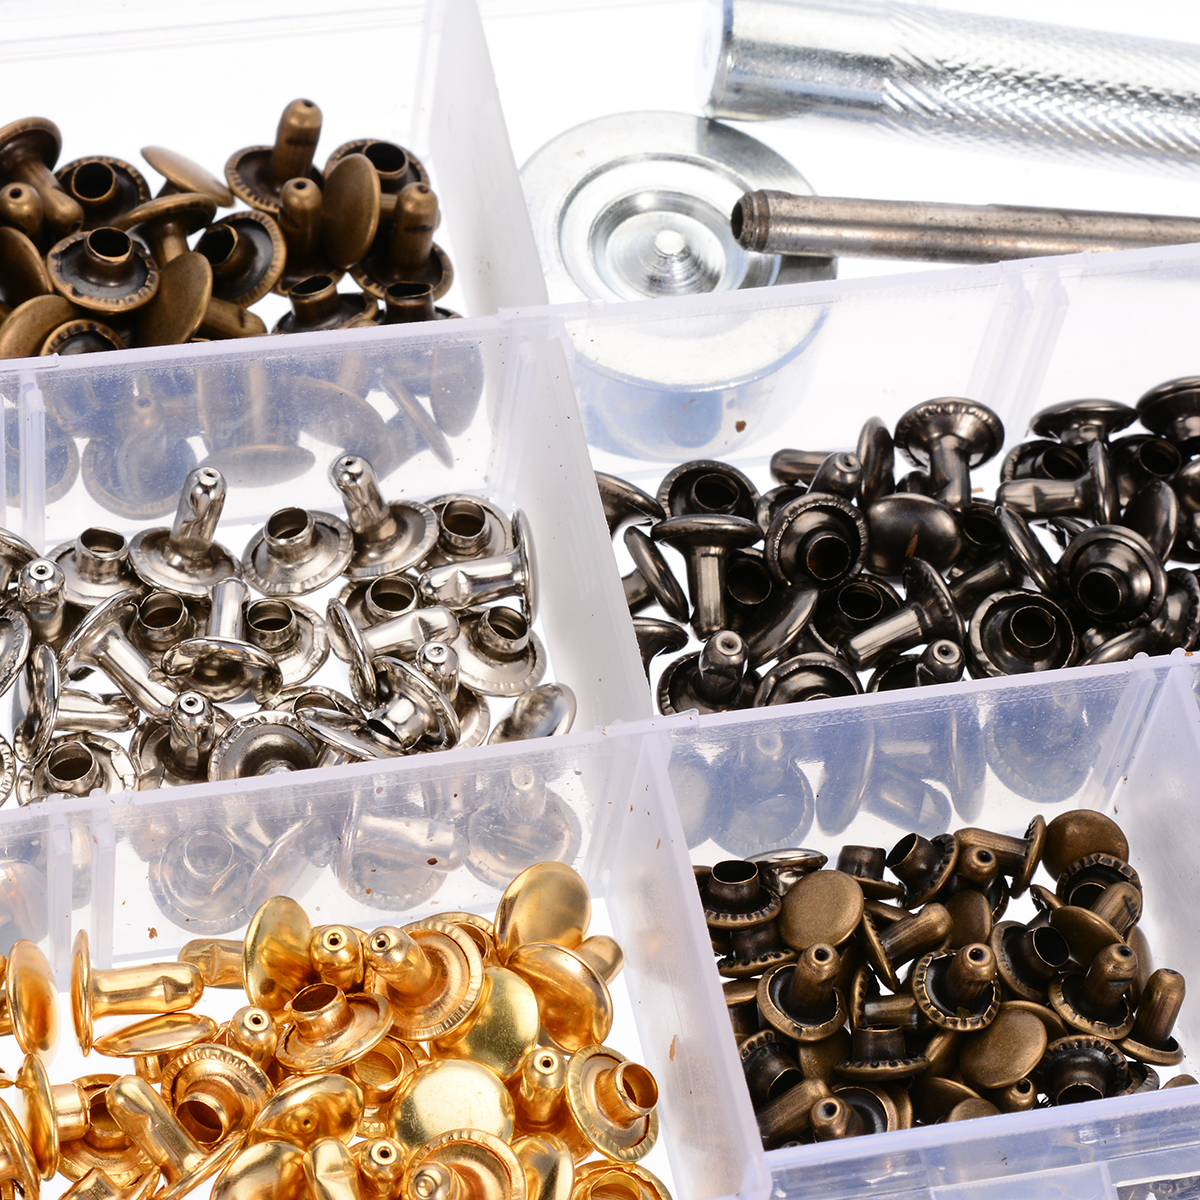 240 Sets Leather Craft Double Cap Repairing Rivets Tubular Snaps Fastener Button Press Metal Studs Fixing Tools Kit